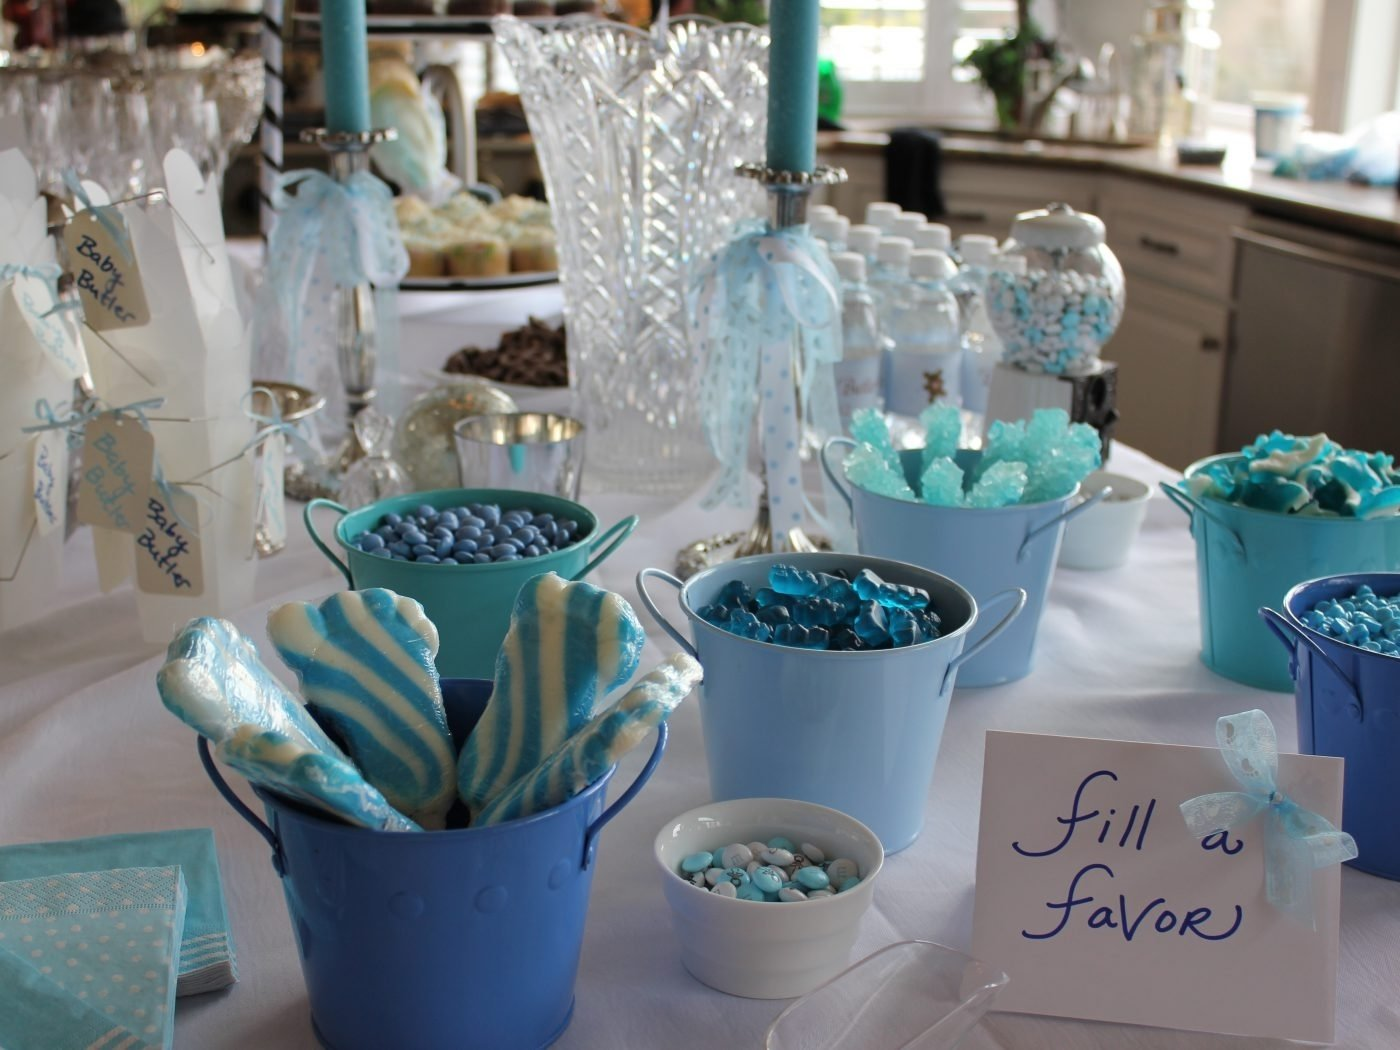 10 Most Popular Baby Shower Favor Ideas For Boys staggering baby shower favor ideas boy decoration for twin and girl 2021